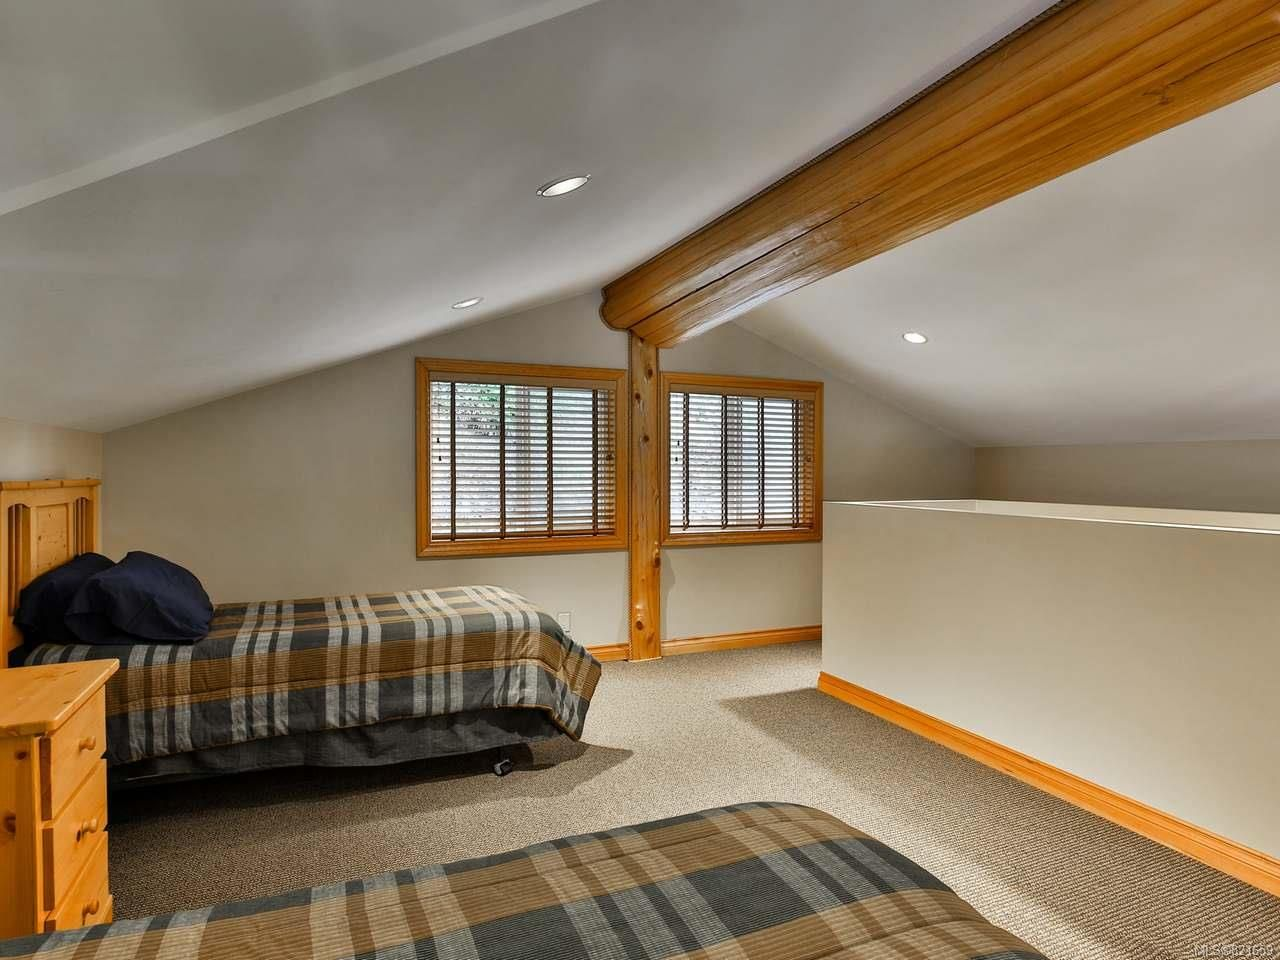 Photo 30: Photos: 1049 Helen Rd in UCLUELET: PA Ucluelet House for sale (Port Alberni)  : MLS®# 821659